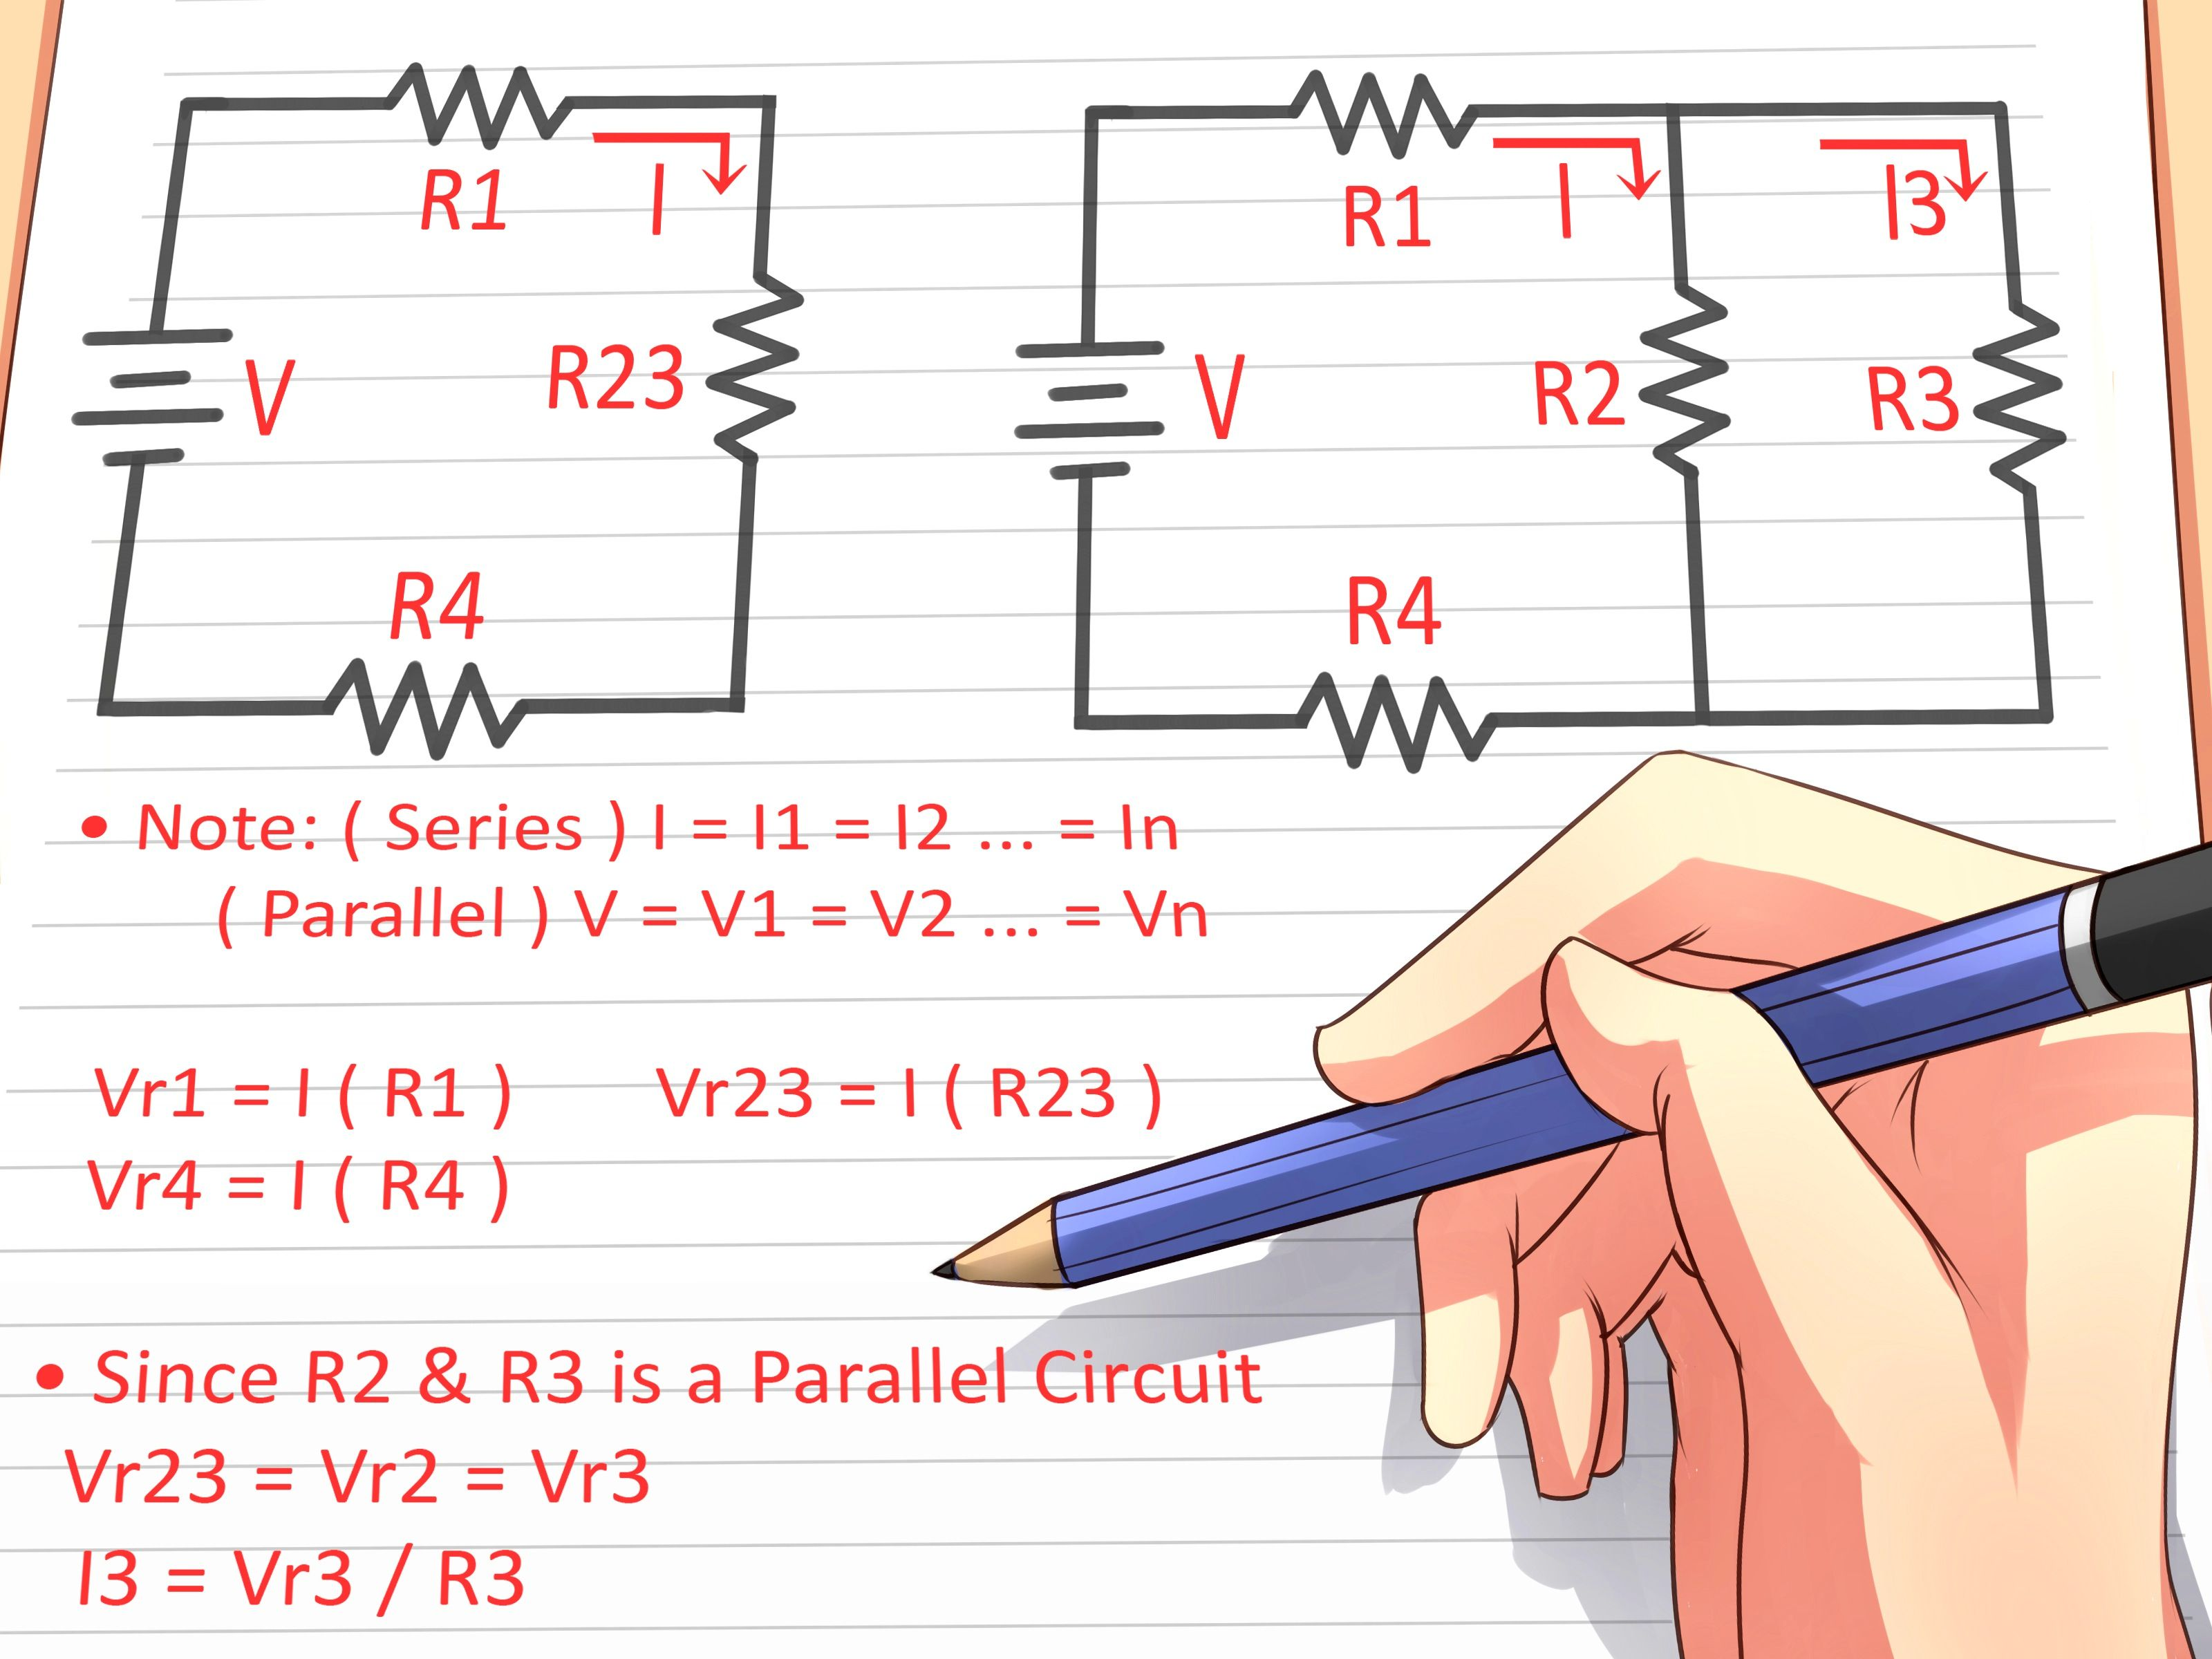 Component how to analyze resistive circuits using ohms law 3 steps component how to analyze resistive circuits using ohms law 3 steps find voltage drop in greentooth Gallery